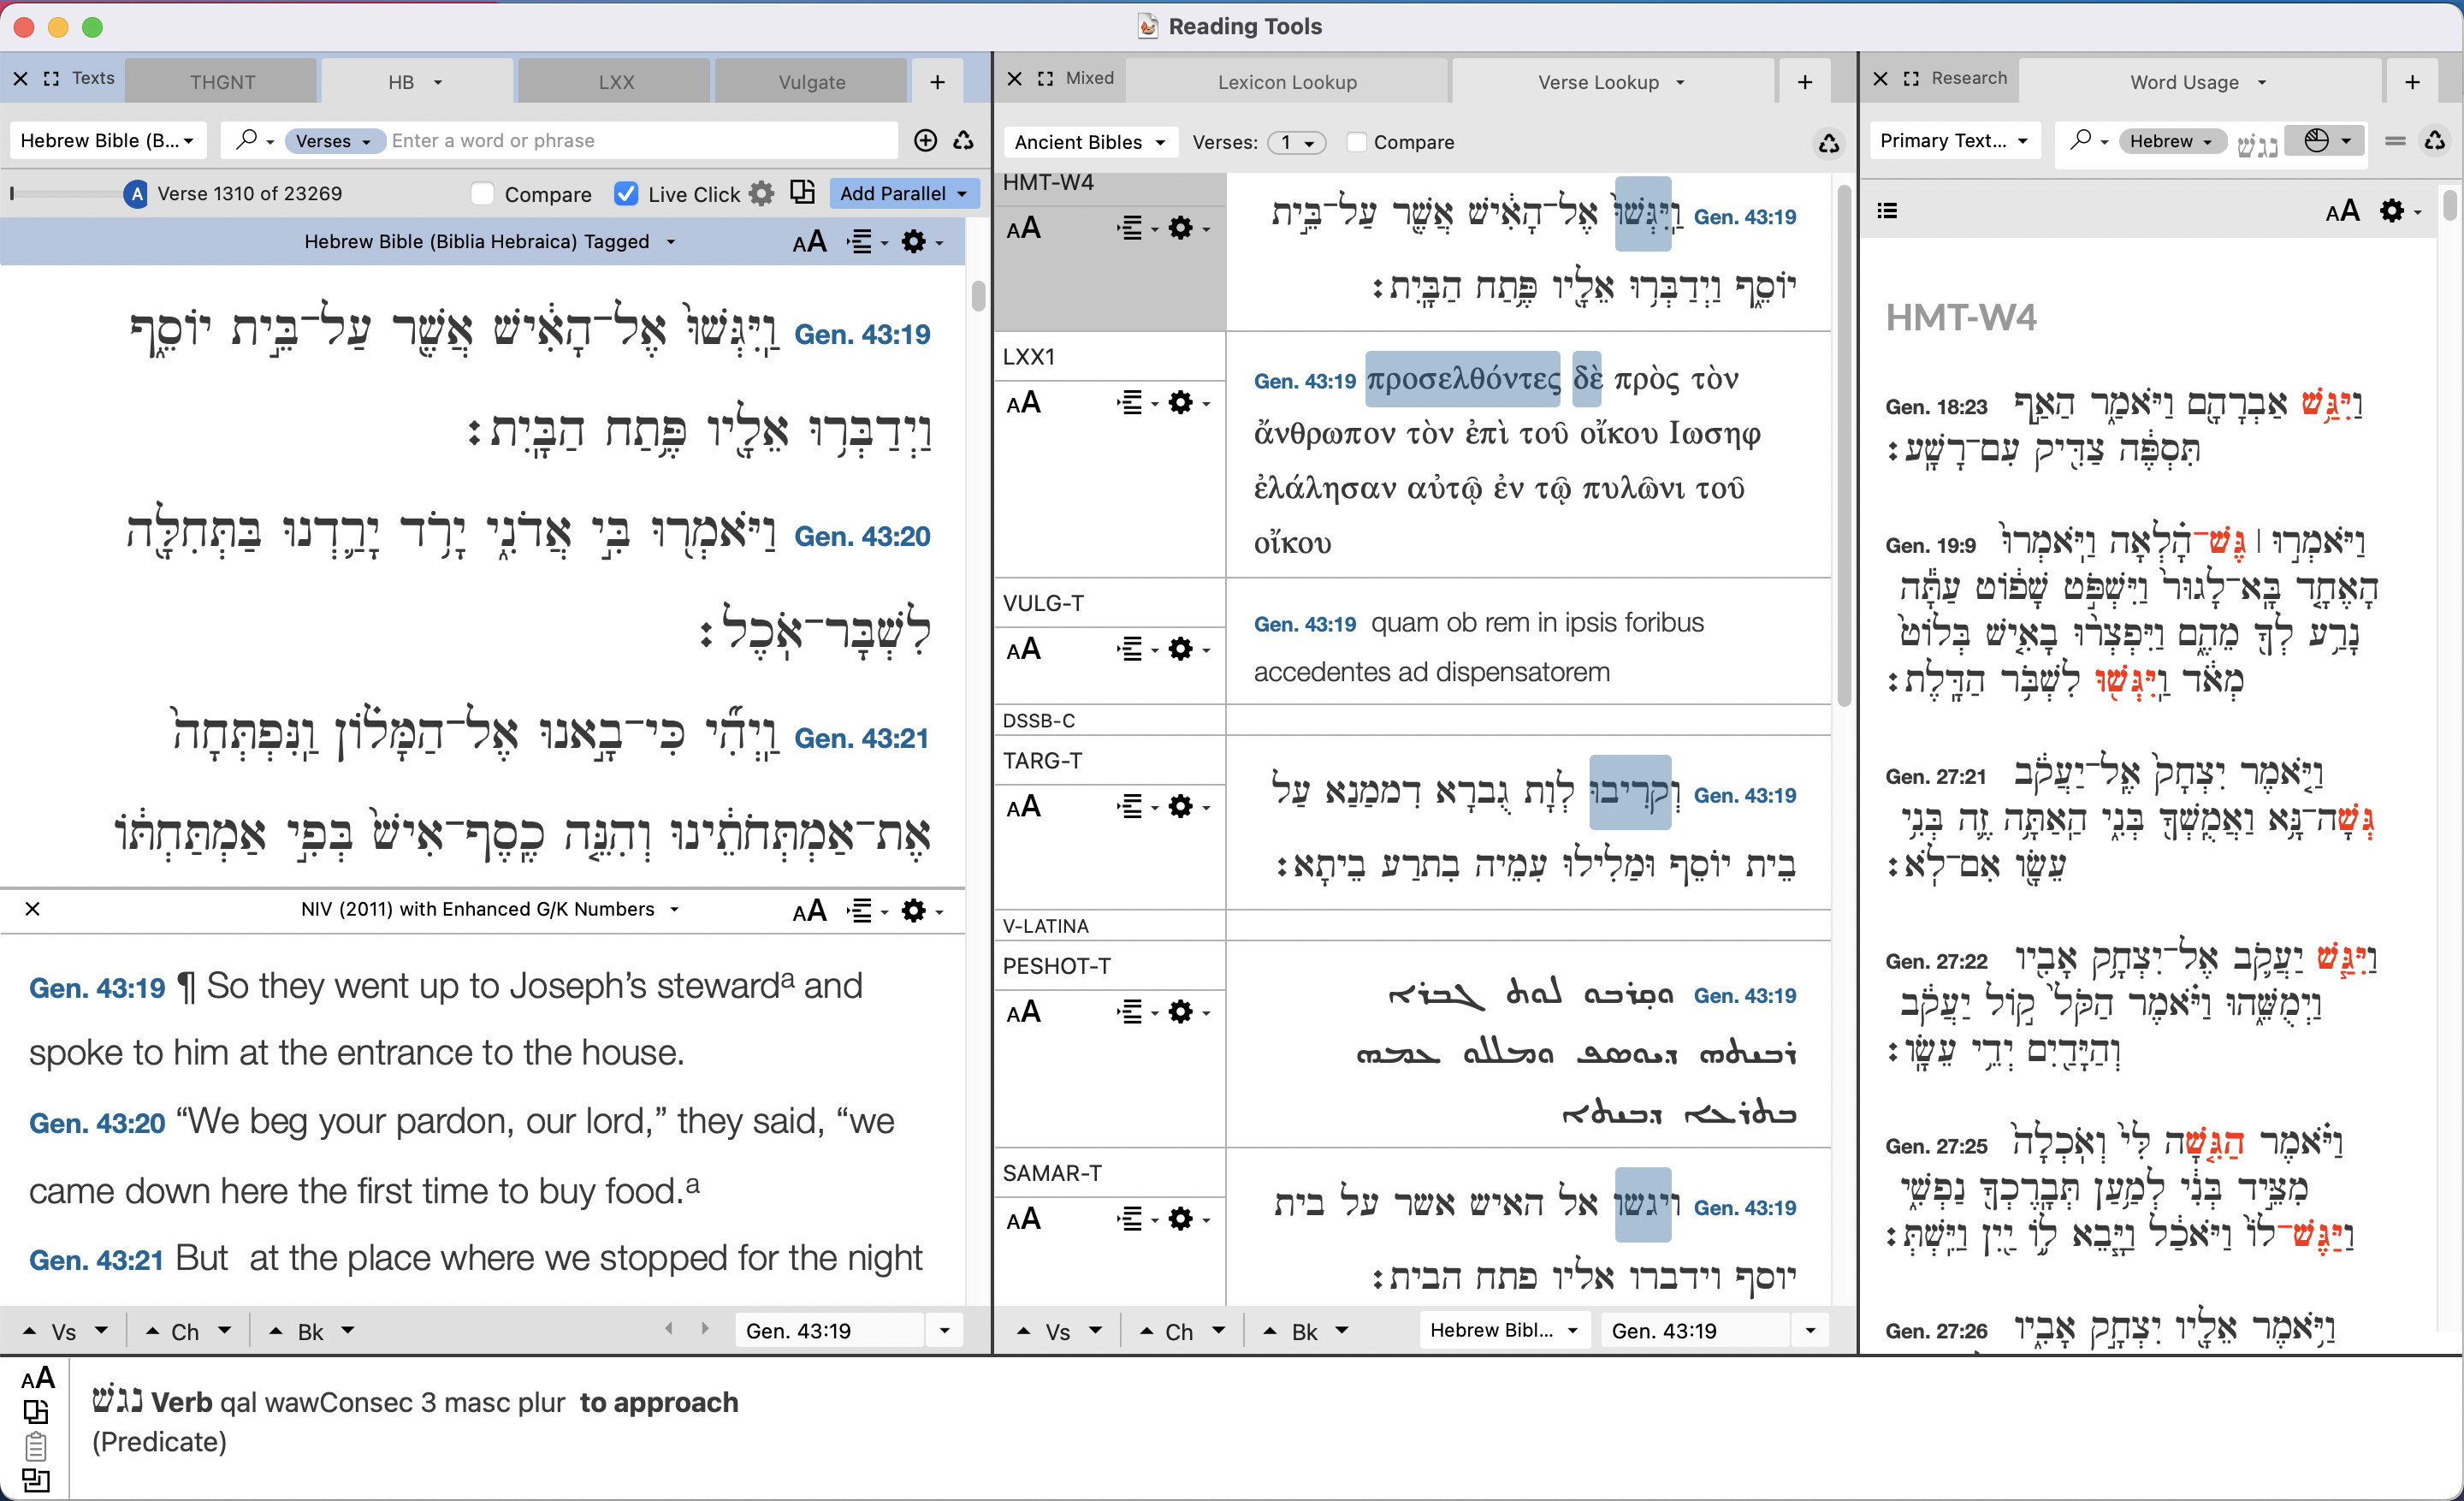 Cross-highlighting among the ancient versions